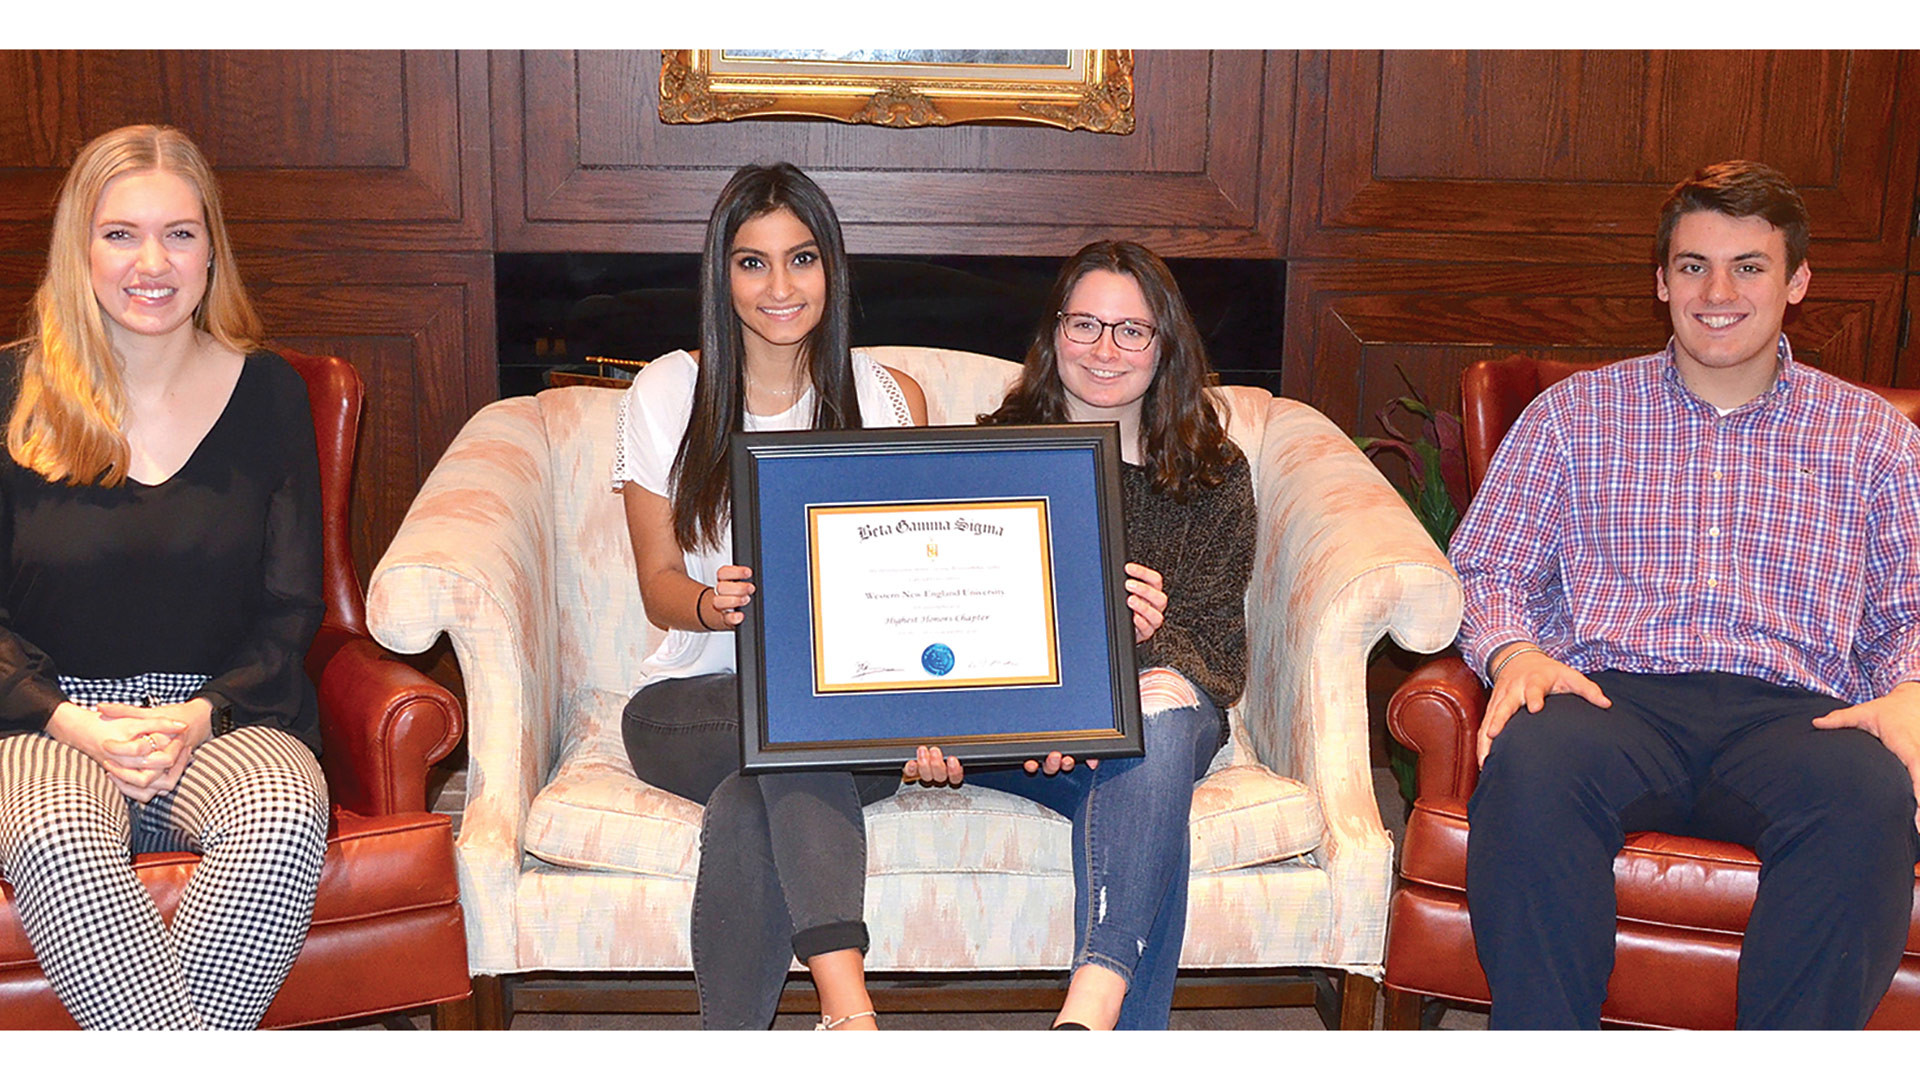 For the third consecutive year, the Beta Gamma Sigma (BGS) Chapter at Western New England University